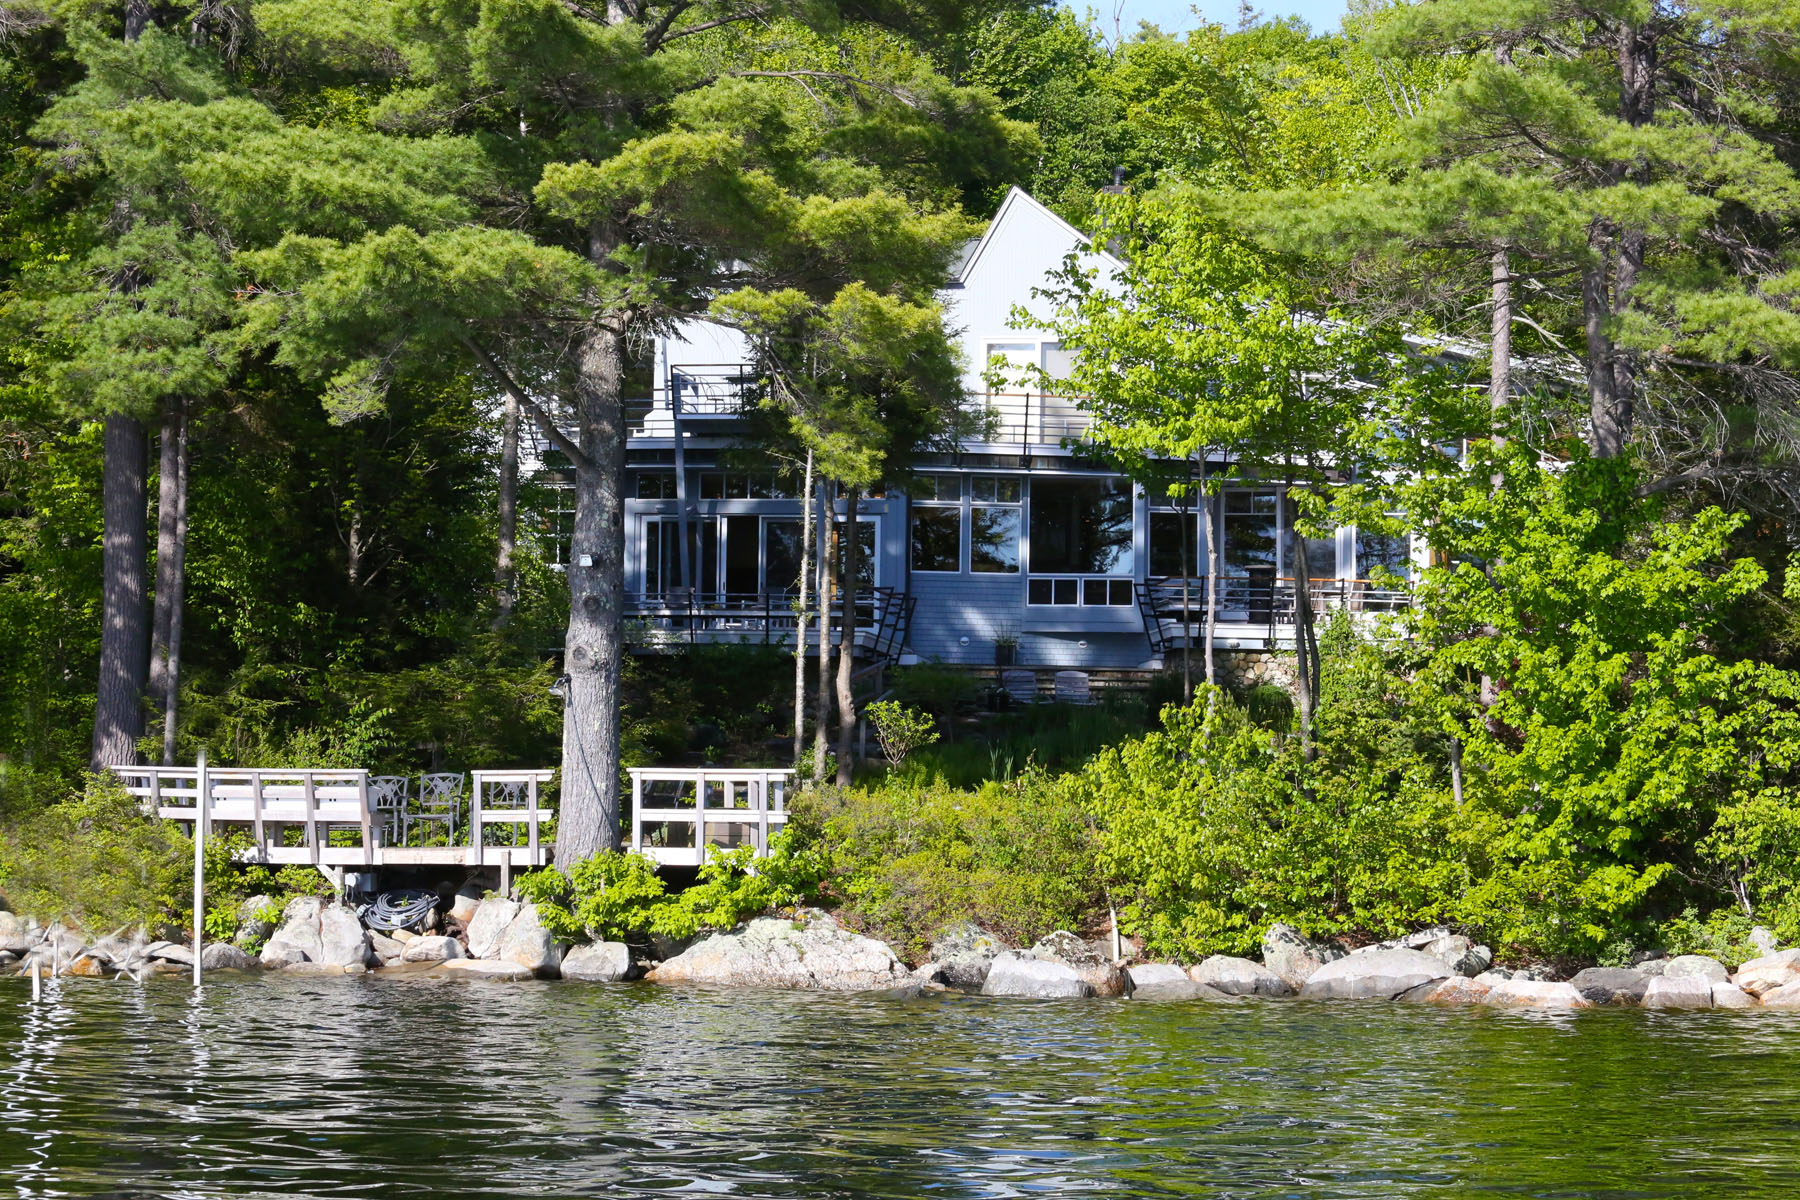 Single Family Home for Sale at Waypointe on Lake Sunapee 119 Grace Hill Rd Newbury, New Hampshire 03255 United States